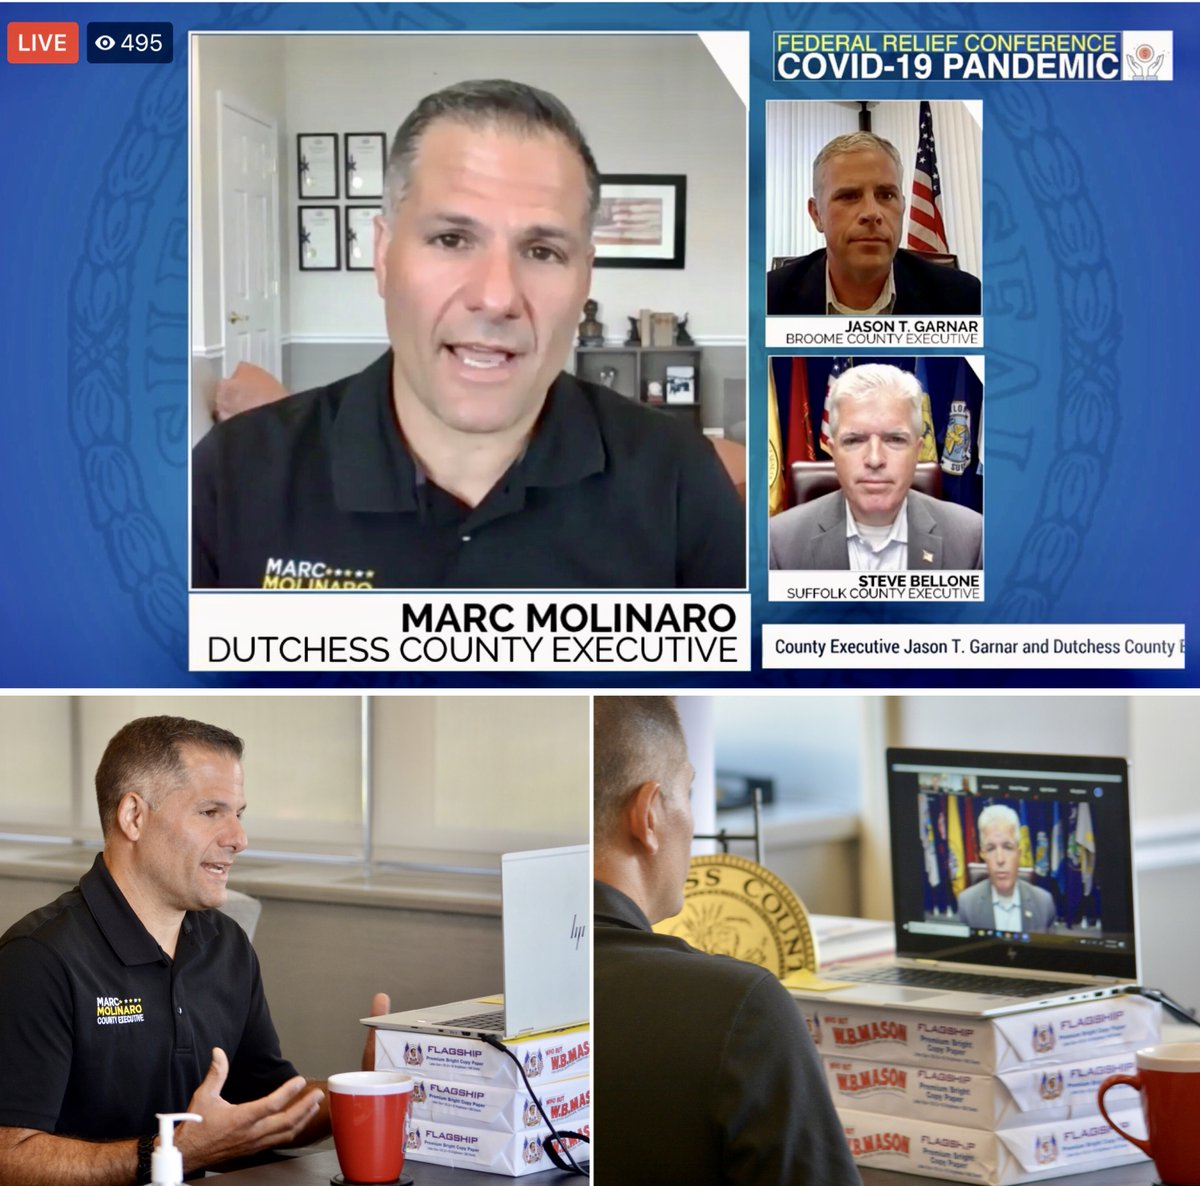 County Executive Marc Molinaro and his counterparts from Suffolk and Broome counties today hosted a virtual press conference to discuss the need for federal aid to local counties as a result of the impact of the COVID-19 pandemic. A replay is available at